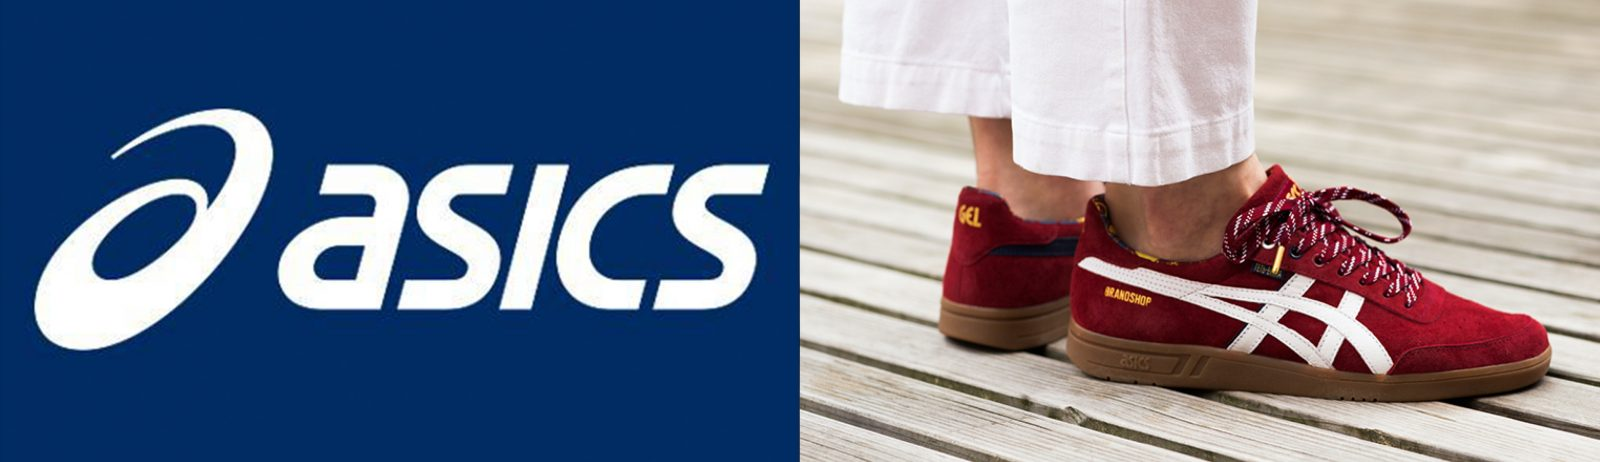 Women's Asics Trainers & Shoes